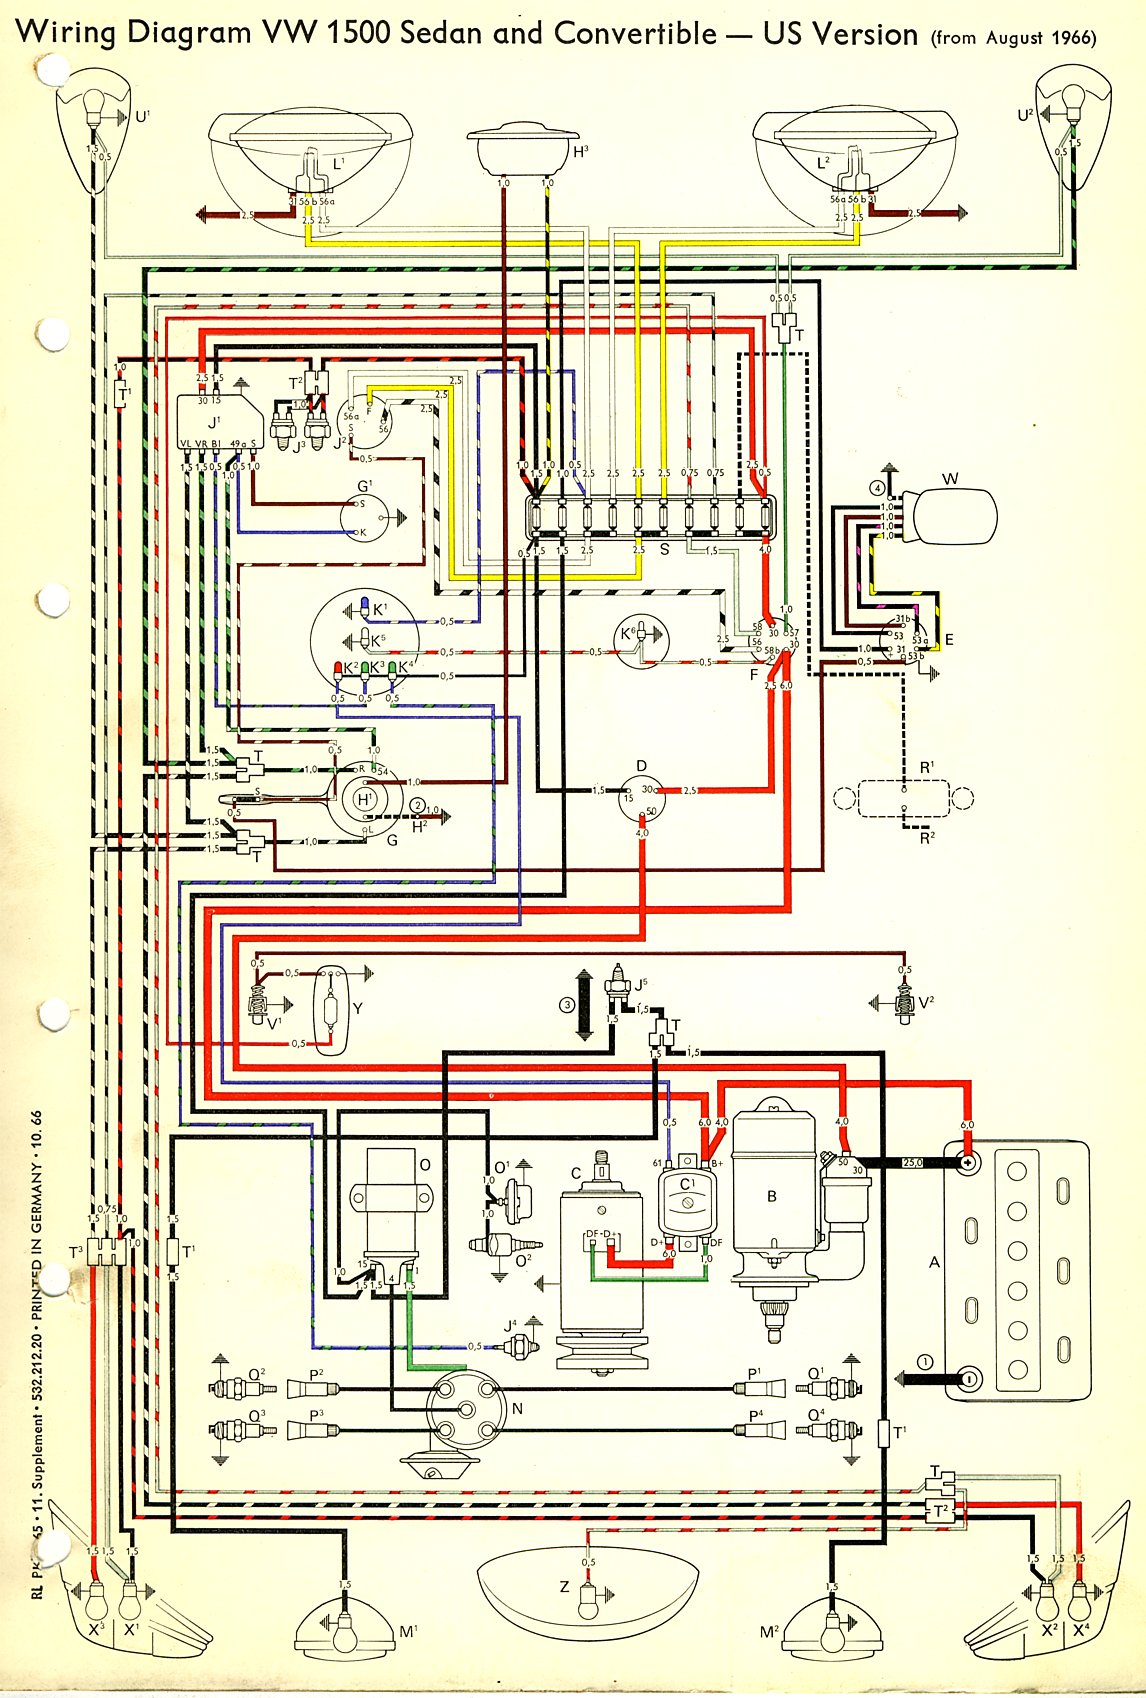 66 vw bug wiring diagram wiring diagram \u2022 1969 vw beetle brake light wiring diagram thesamba com type 1 wiring diagrams rh thesamba com 66 vw beetle wiring diagram vw buggy wiring diagram